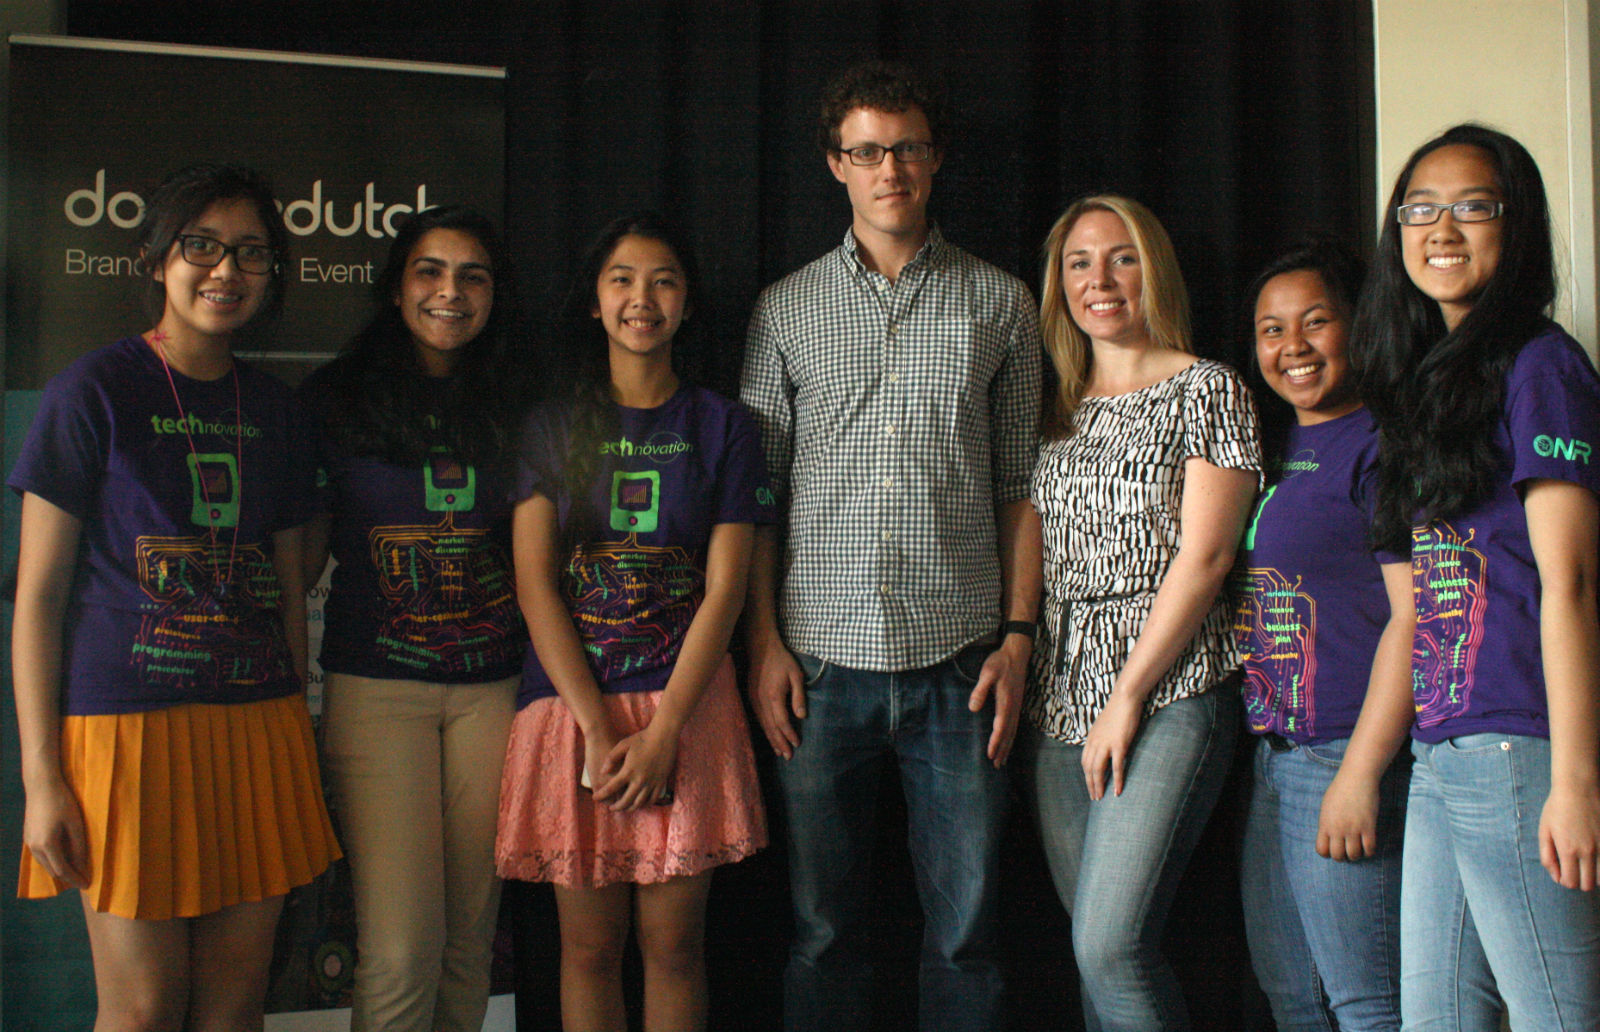 One of ICA's Technovation teams pose with mentors from Double Dutch. Photo by Daniel Hirsch.